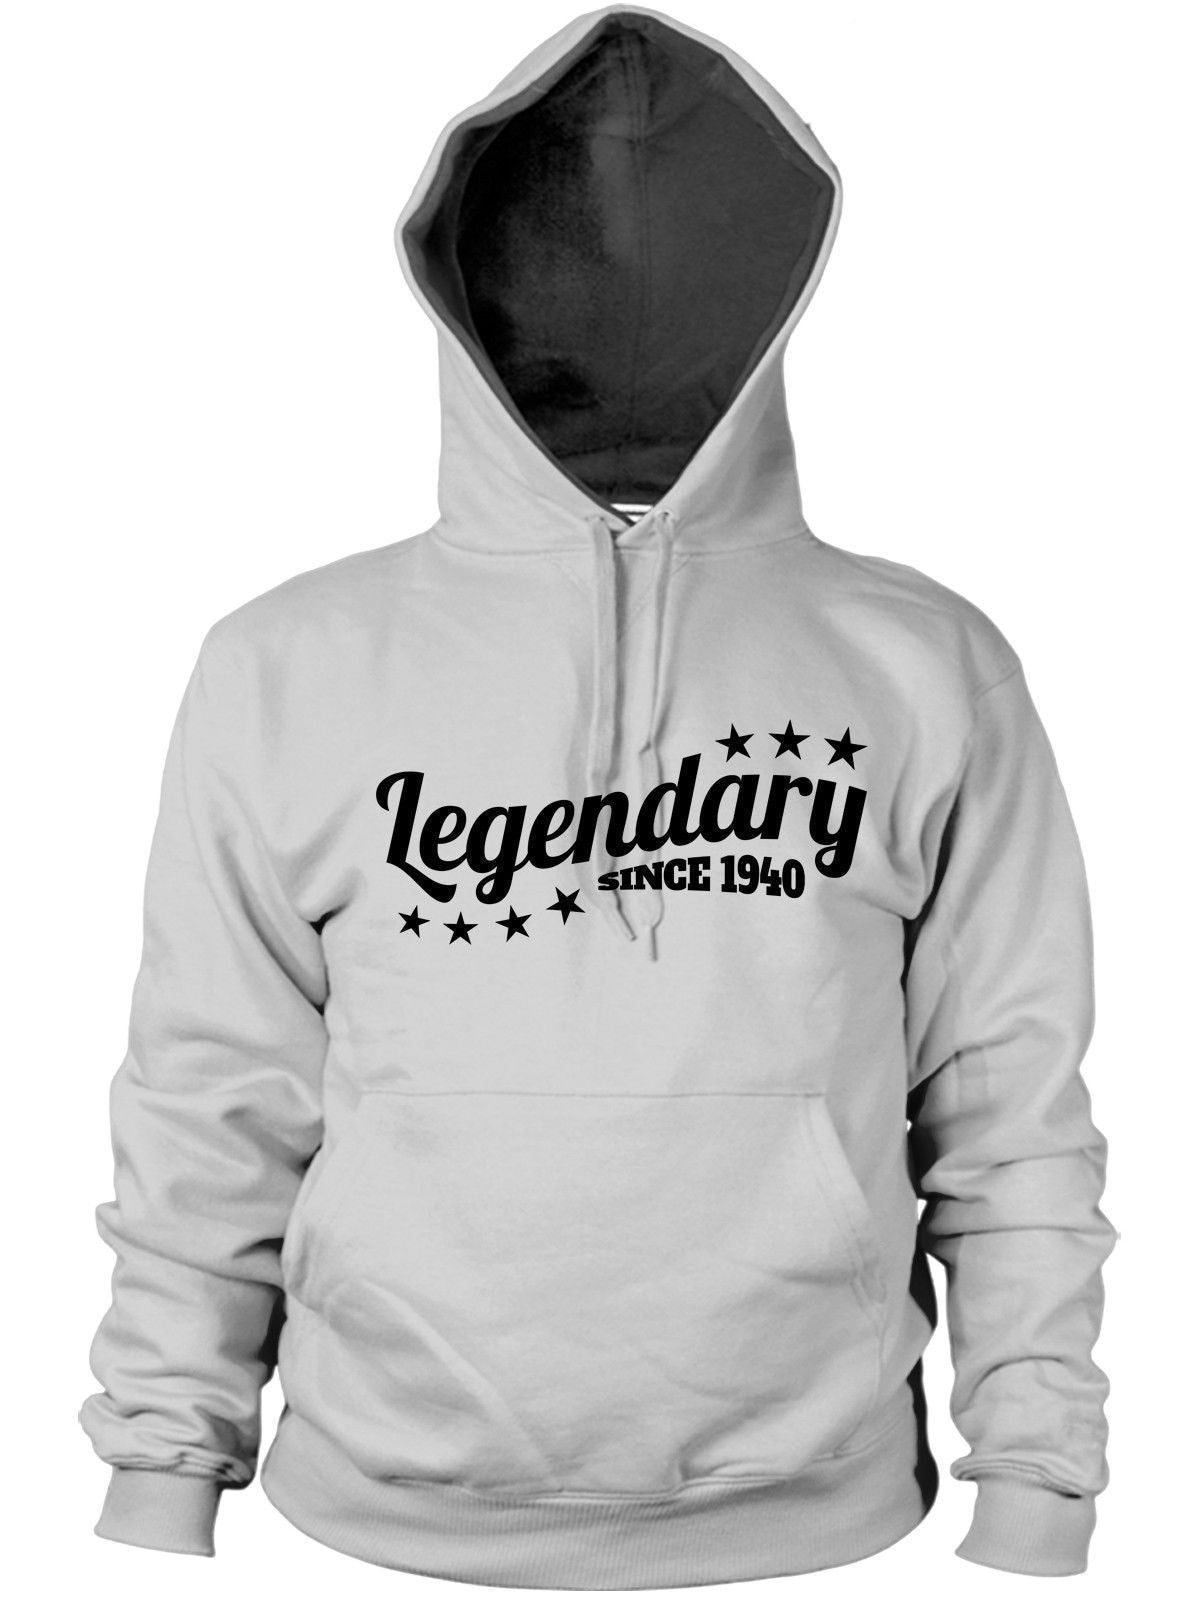 Legendary Since 1940 Hoodie Gift Birthday Present 76 77 Years Old Mens Women Dad